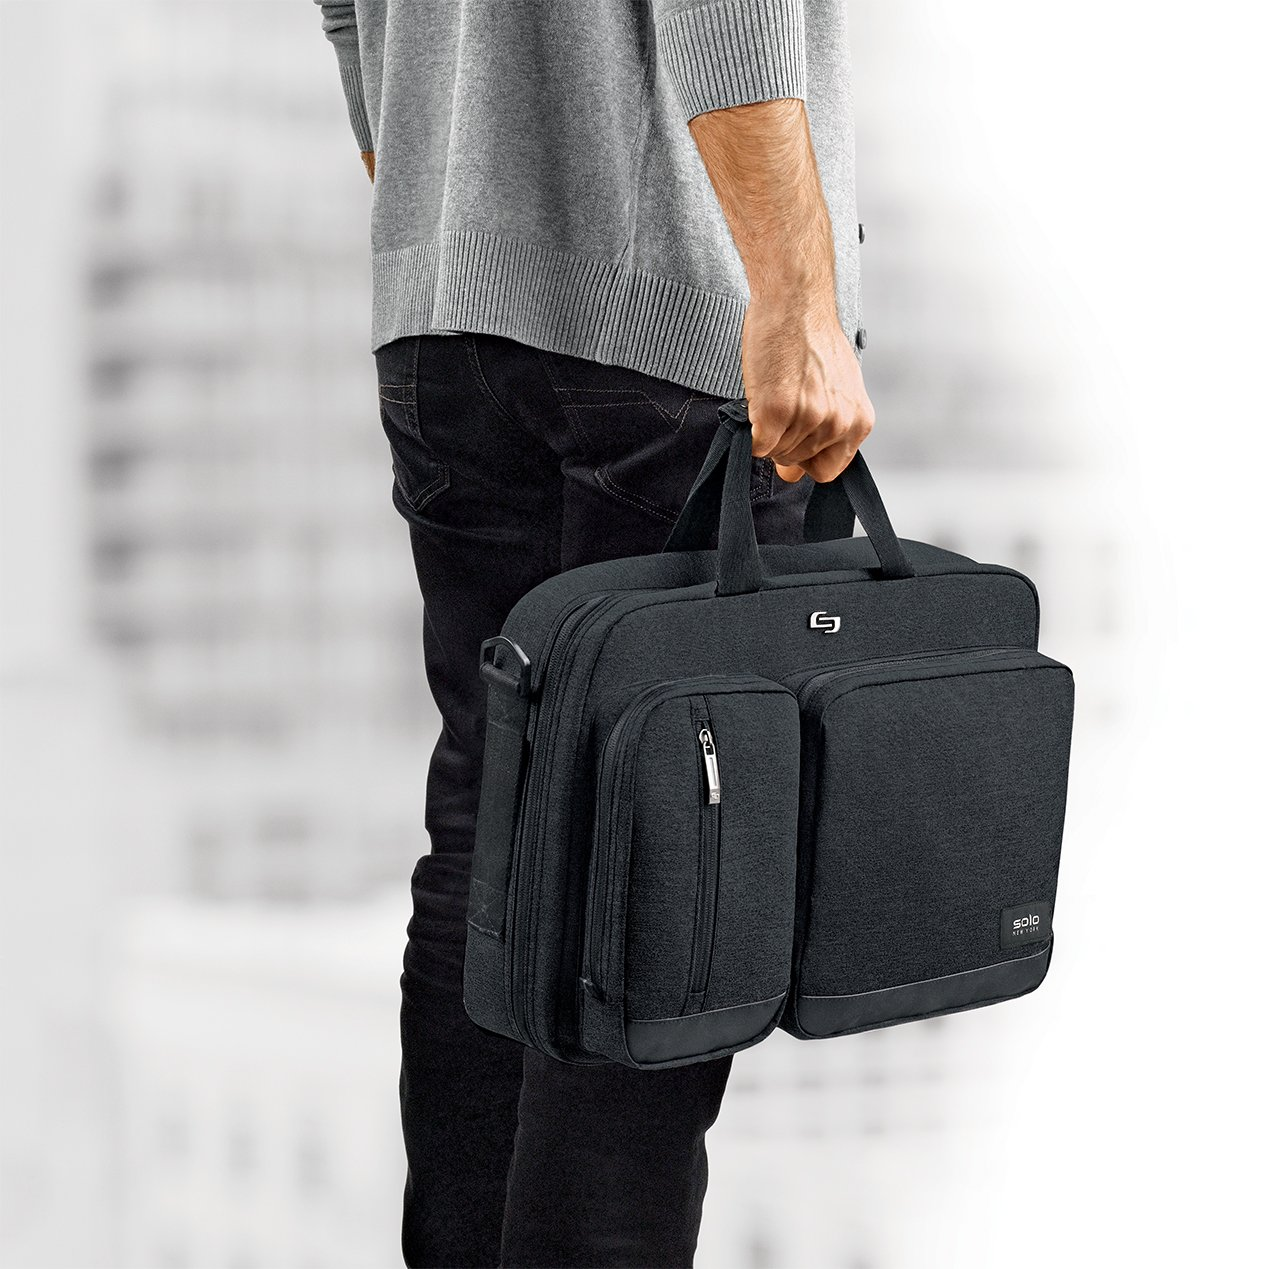 Solo Duane 15.6 Inch Laptop Hybrid Briefcase, Converts to Backpack, Grey UBN310-10